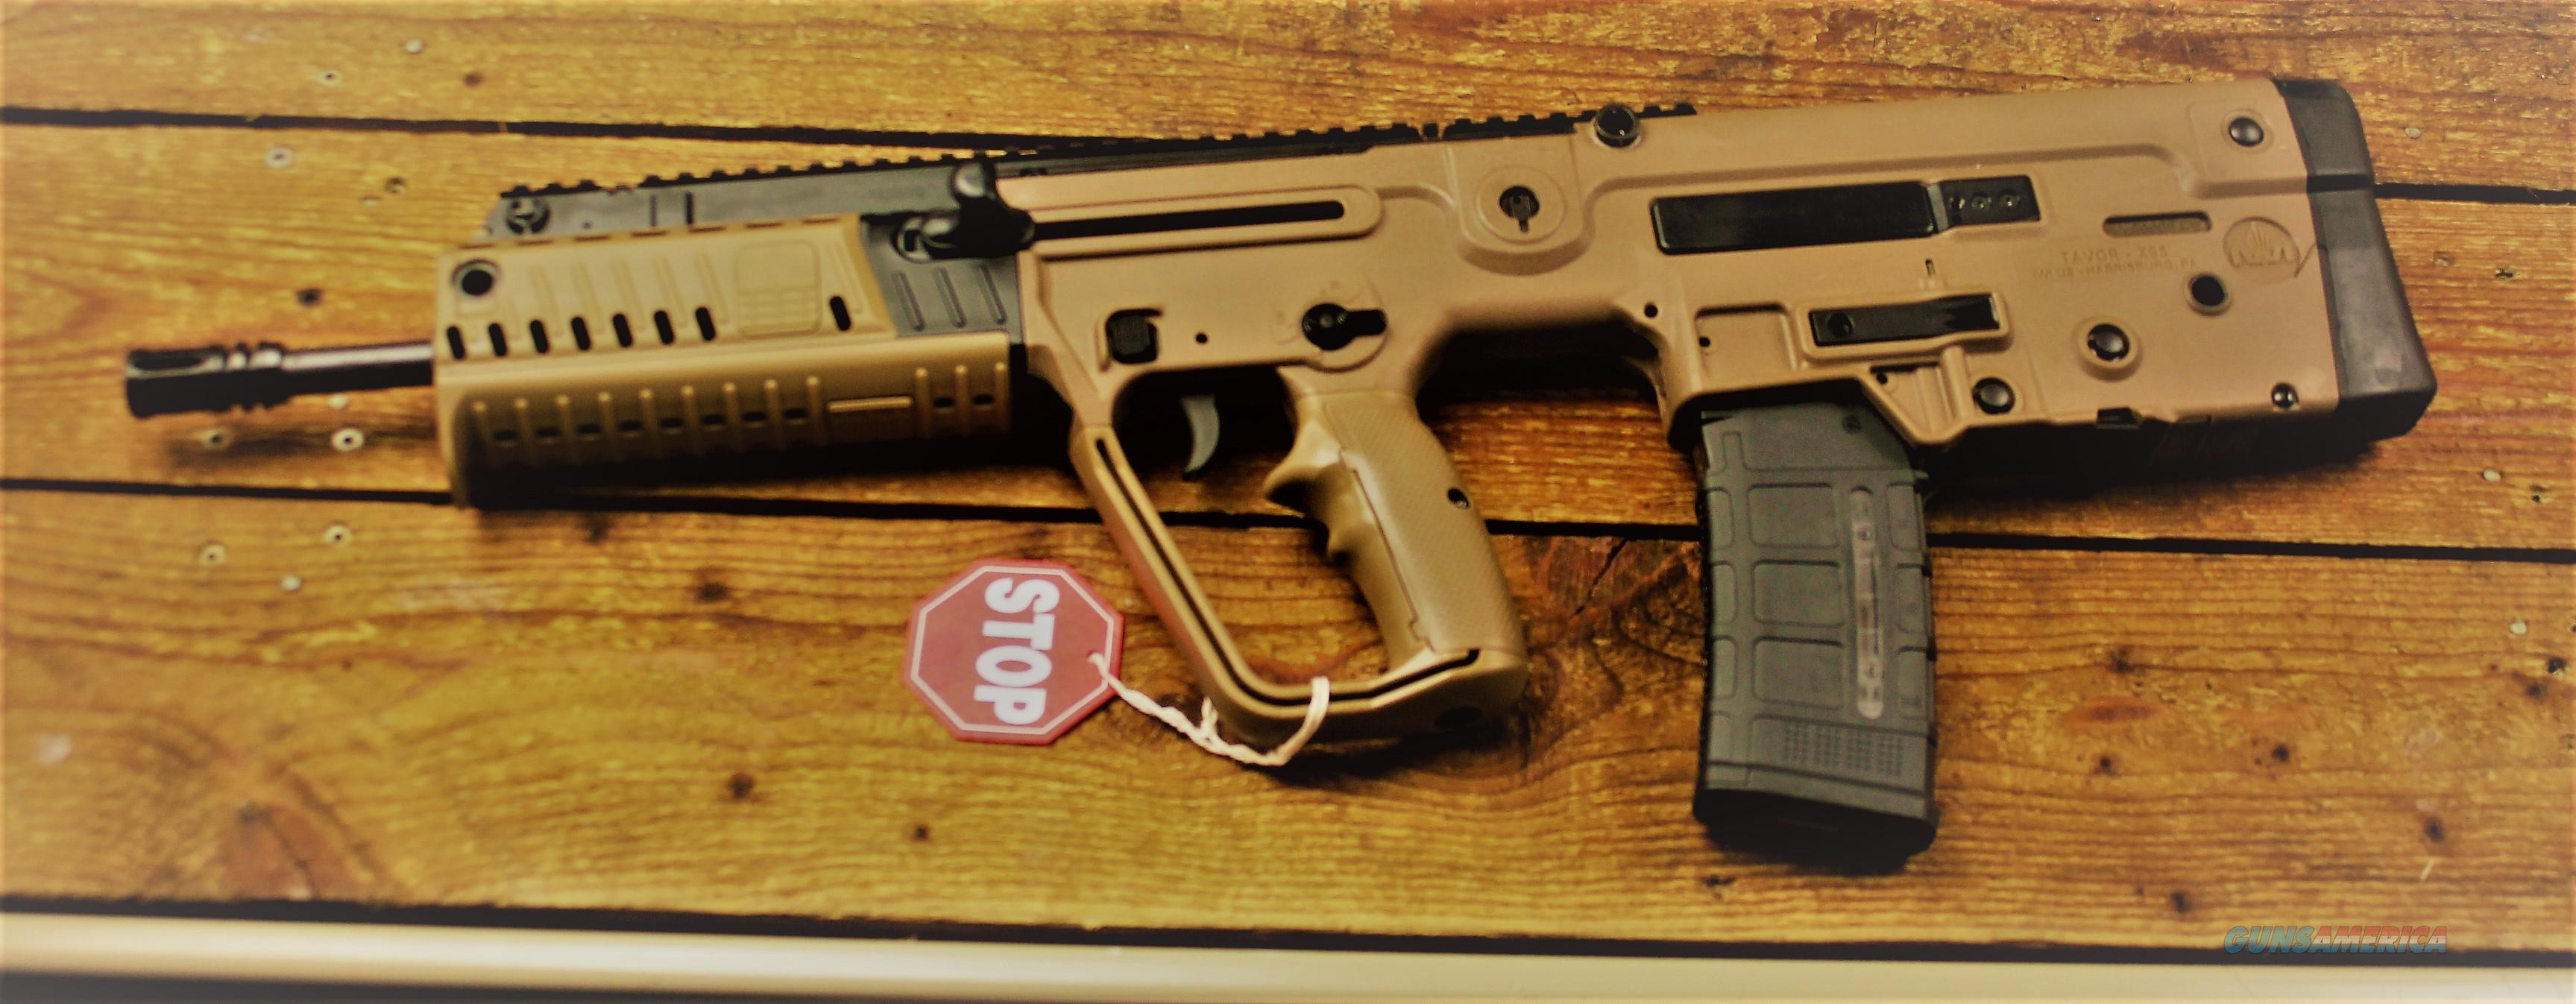 1 EASY PAY $105 DOWN LAYAWAY MONTHLY PAYMENTS IWI   Tavor Close Quarter Design TACTICAL  X95 CENTERFIRE TAC Next Generation bullpup Folding Tritium SIGHTS 223 Remington 5.56 NATO Polymer FDE POLY Flat Dark Earth STOCK Synthetic  XFD16  Guns > Rifles > IWI Rifles